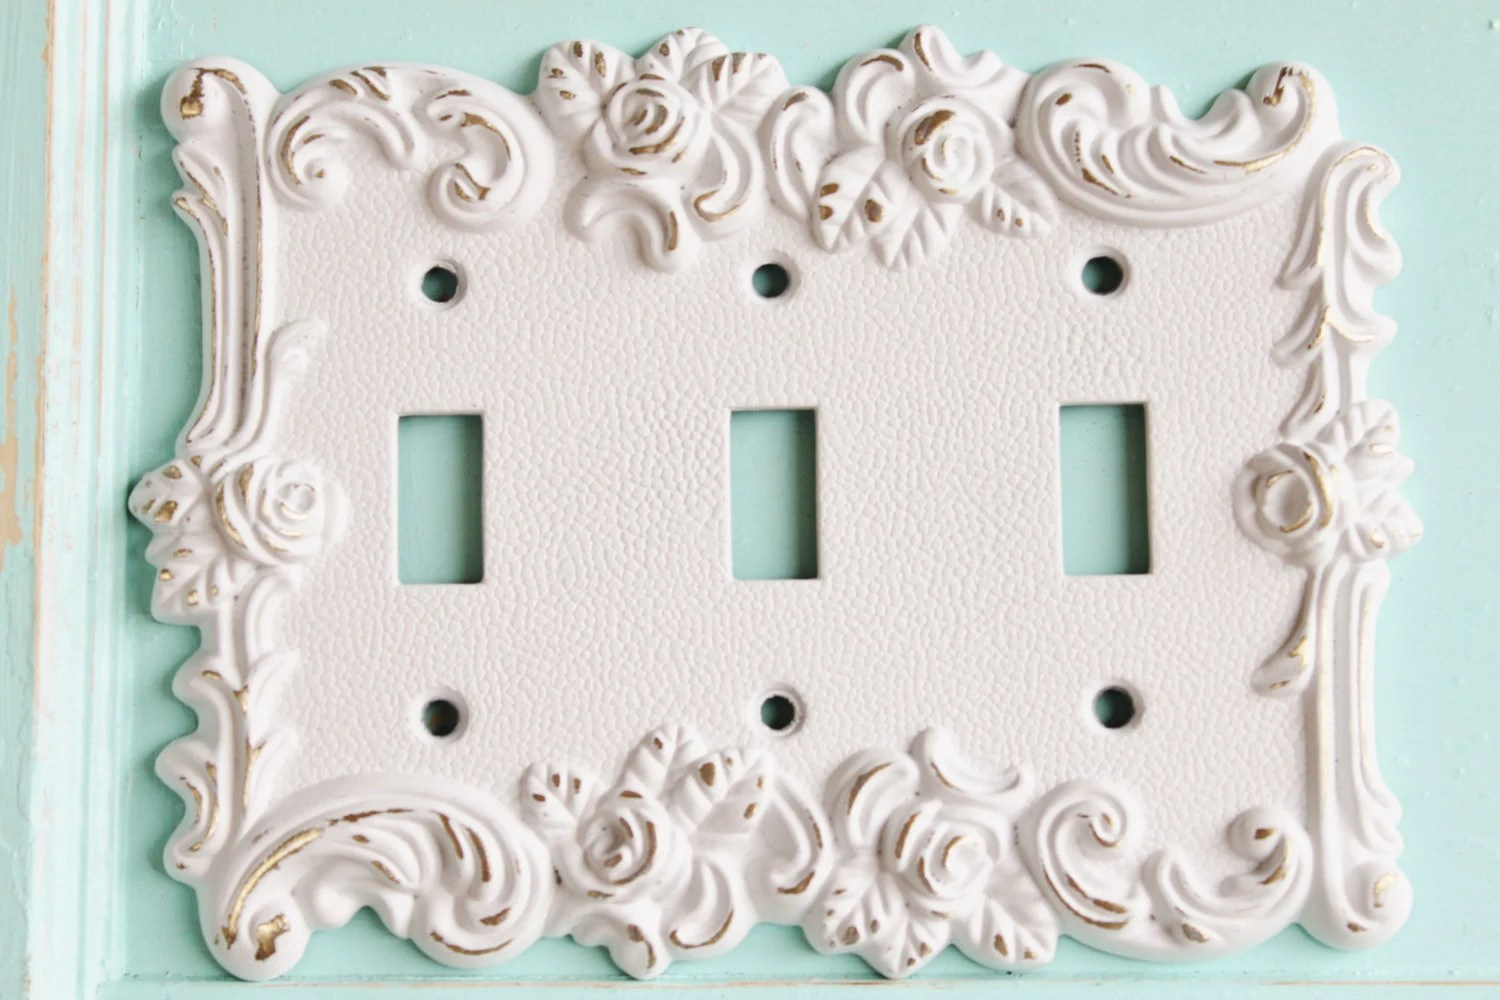 Vintage Light Switch Plate Covers Victorian Antique Vintage Style Rose 3 Toggle Light Switch Cover Triple Light Switch Cover Metal Wall Decor Lighting Outlet Cover